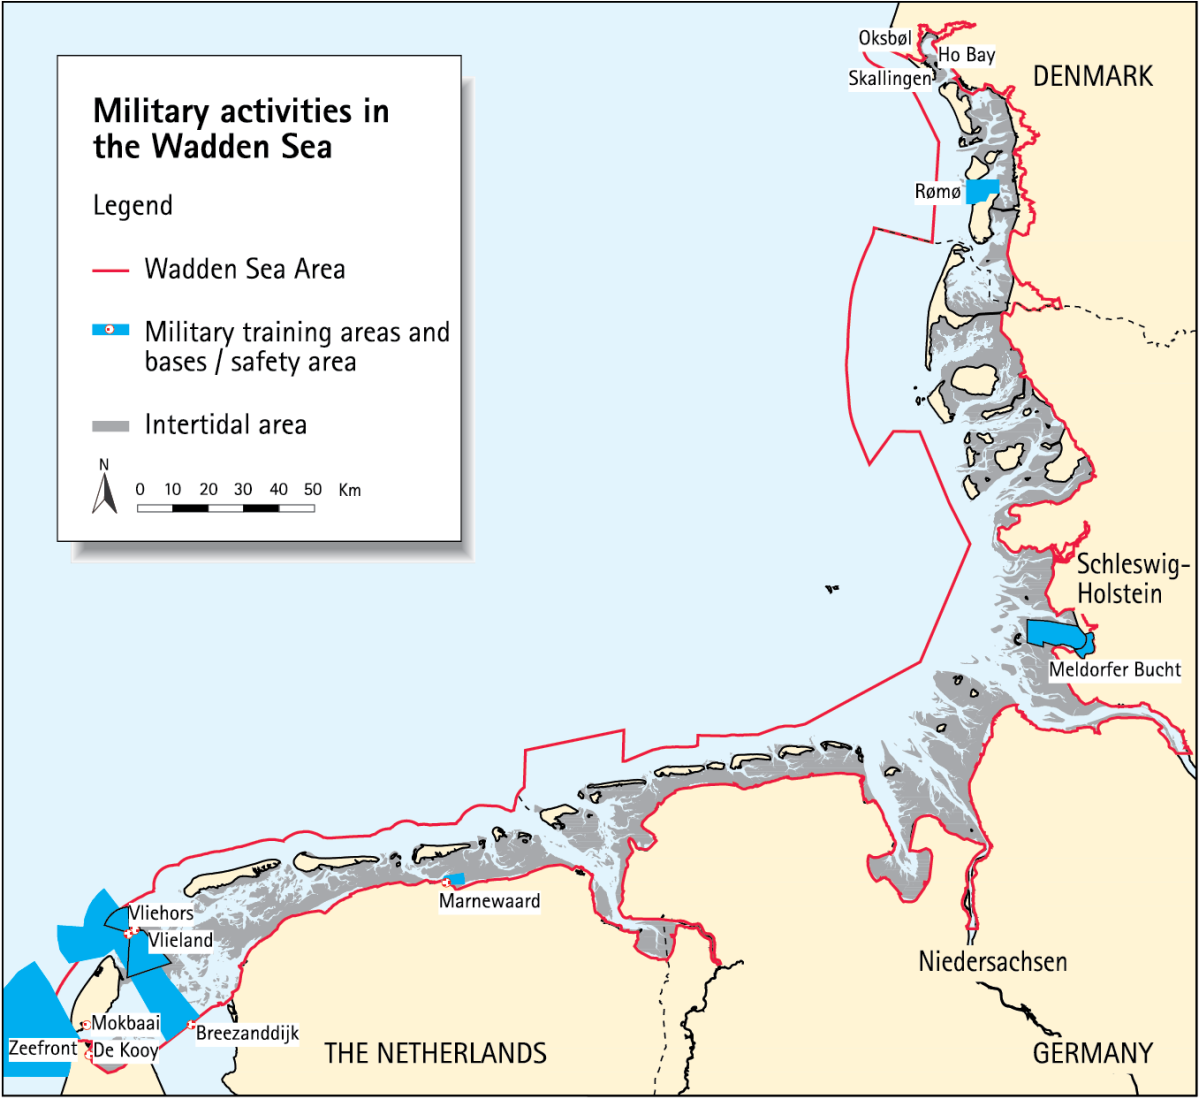 Figure 1. Military activities in the Wadden Sea Area.